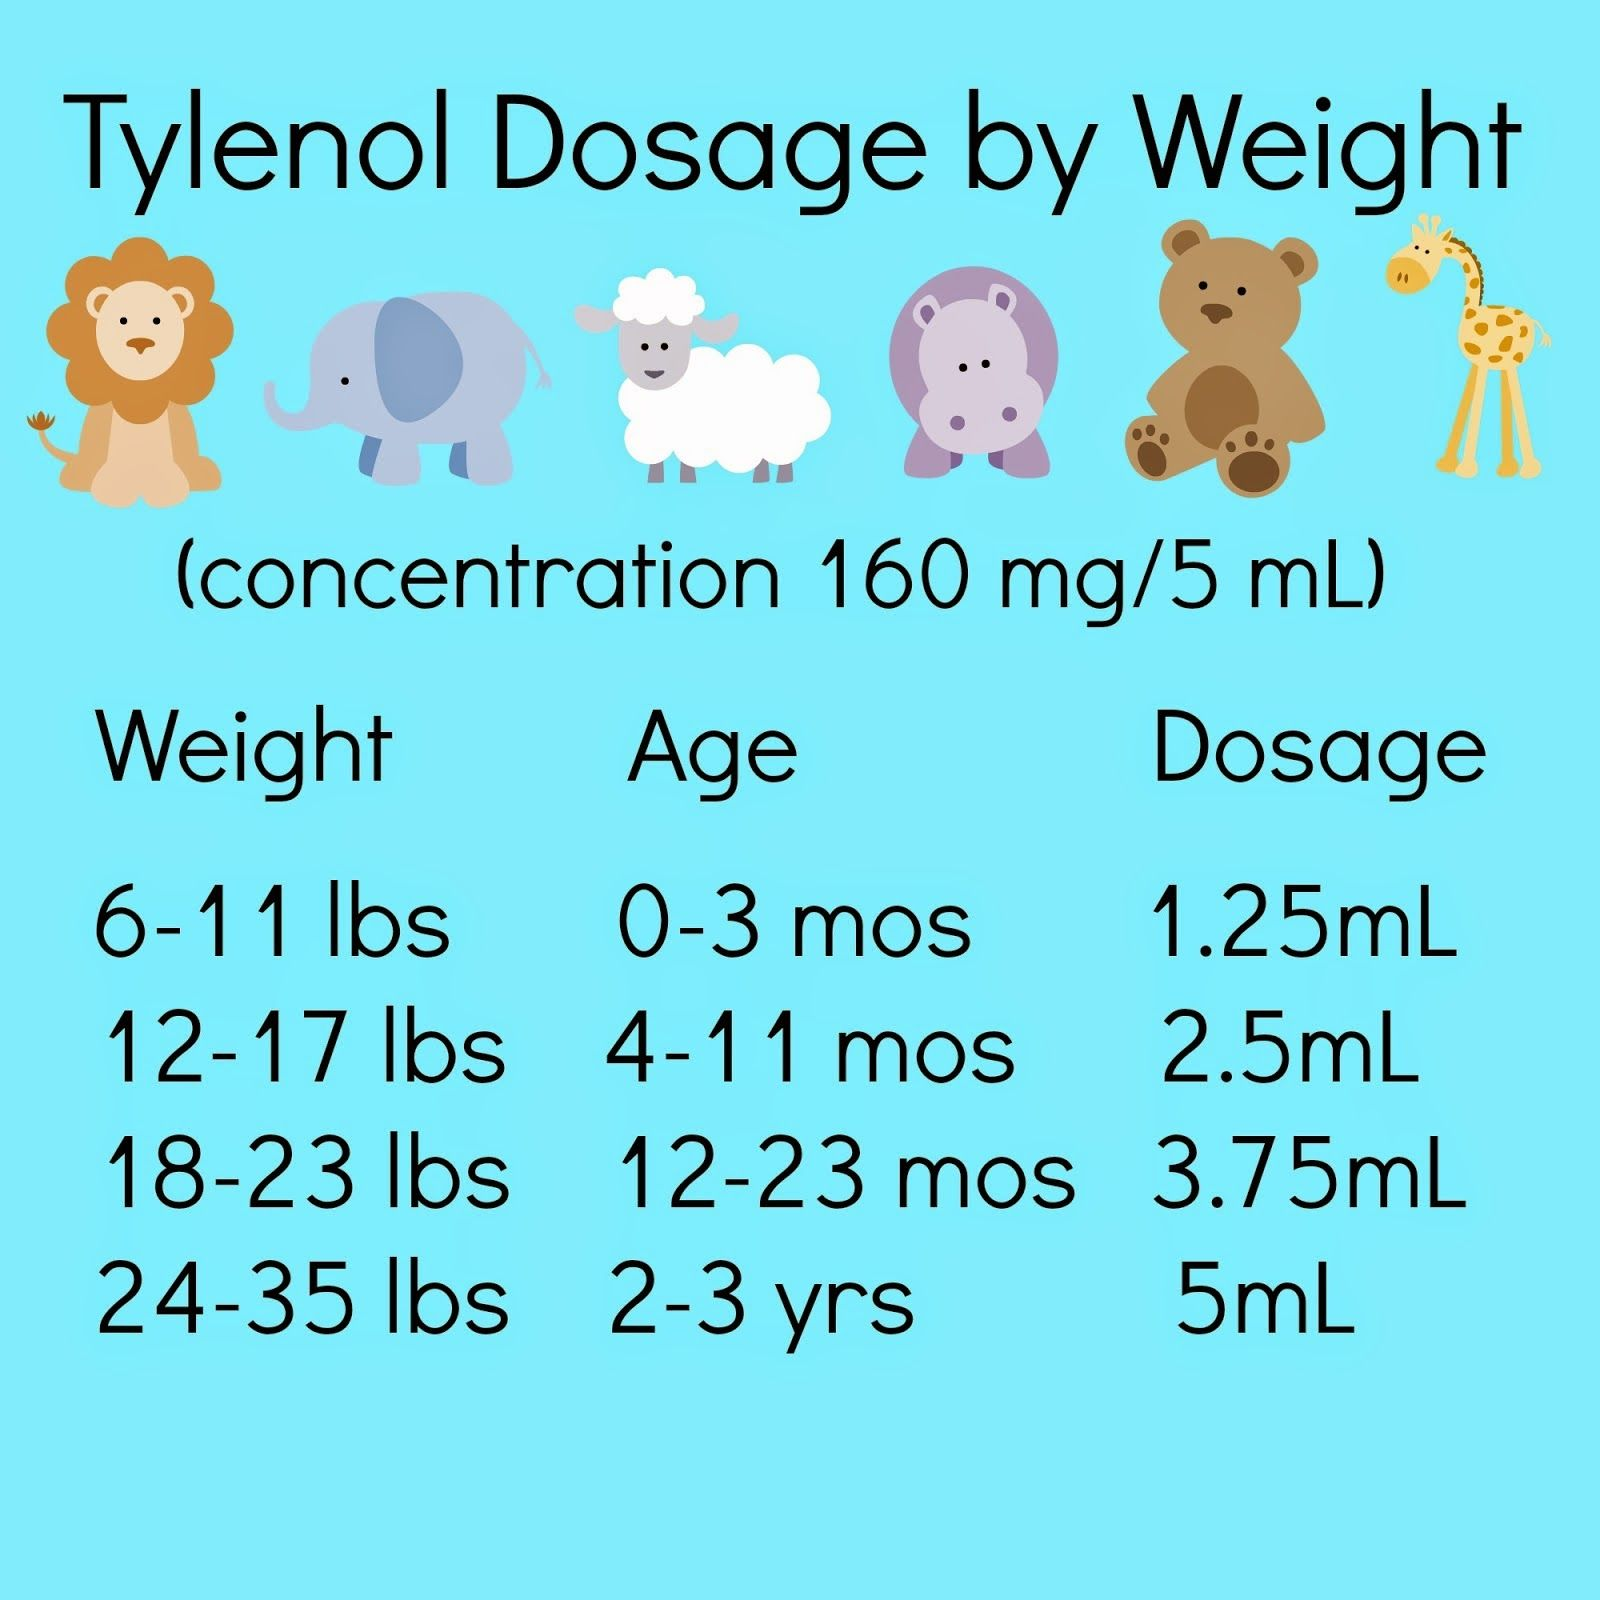 Acetaminophen tylenol and ibuprofen motrin dosage charts for tips on survival with a sick baby tylenol dosage chart by weight print this out and keep it with your childrens tylenol geenschuldenfo Image collections